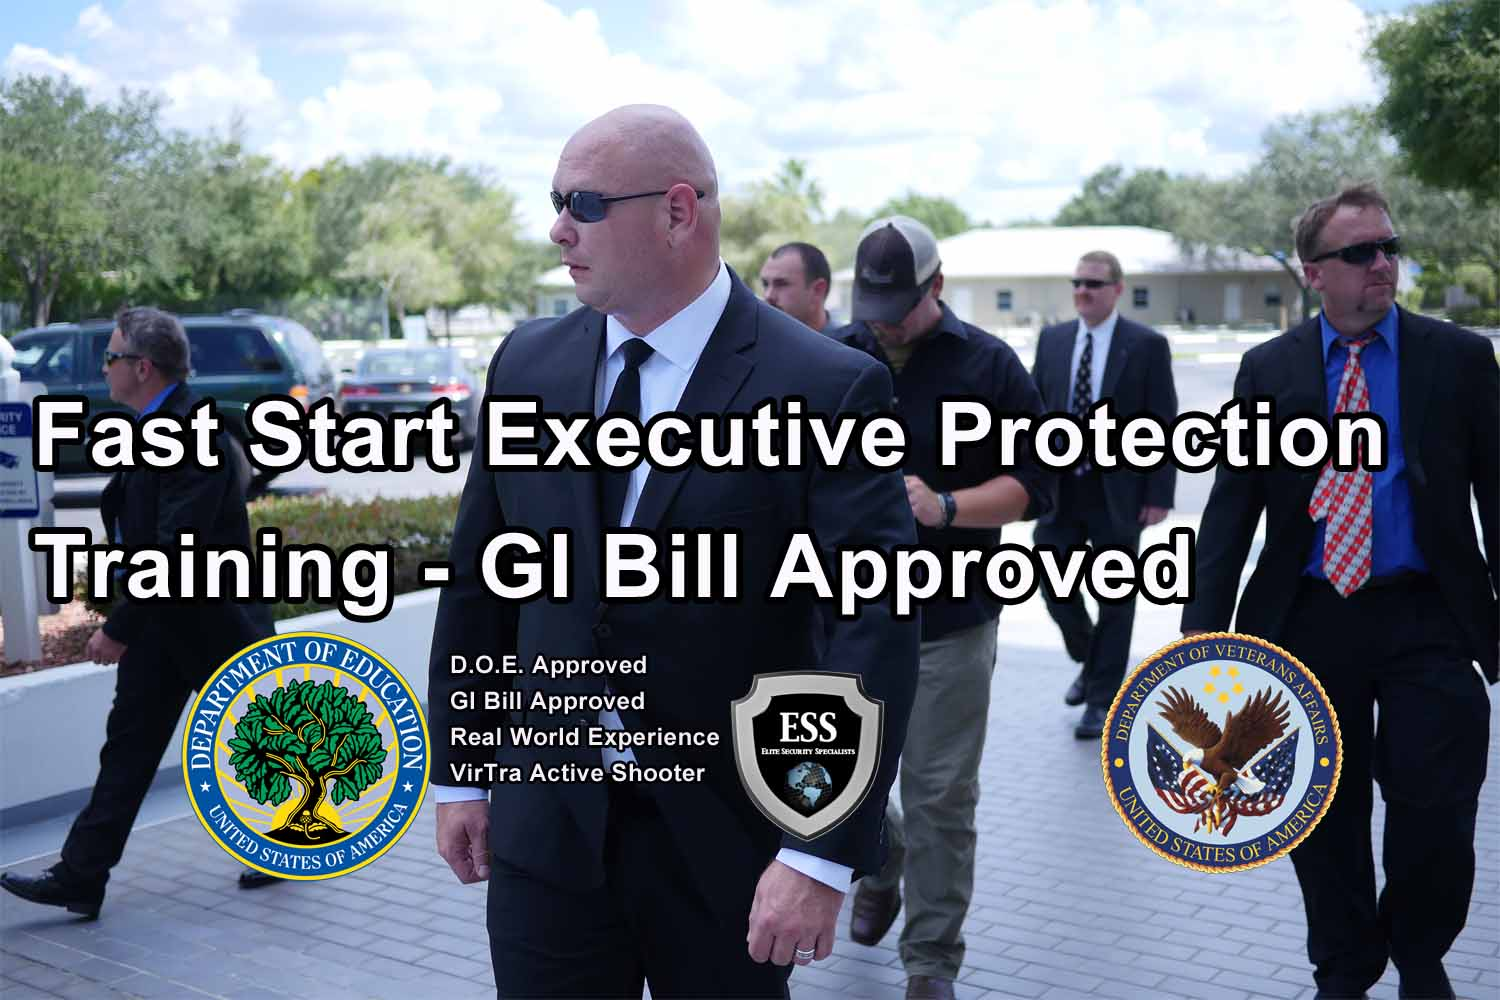 GI Bill Approved Executive Protection Training - Mississippi 3 day